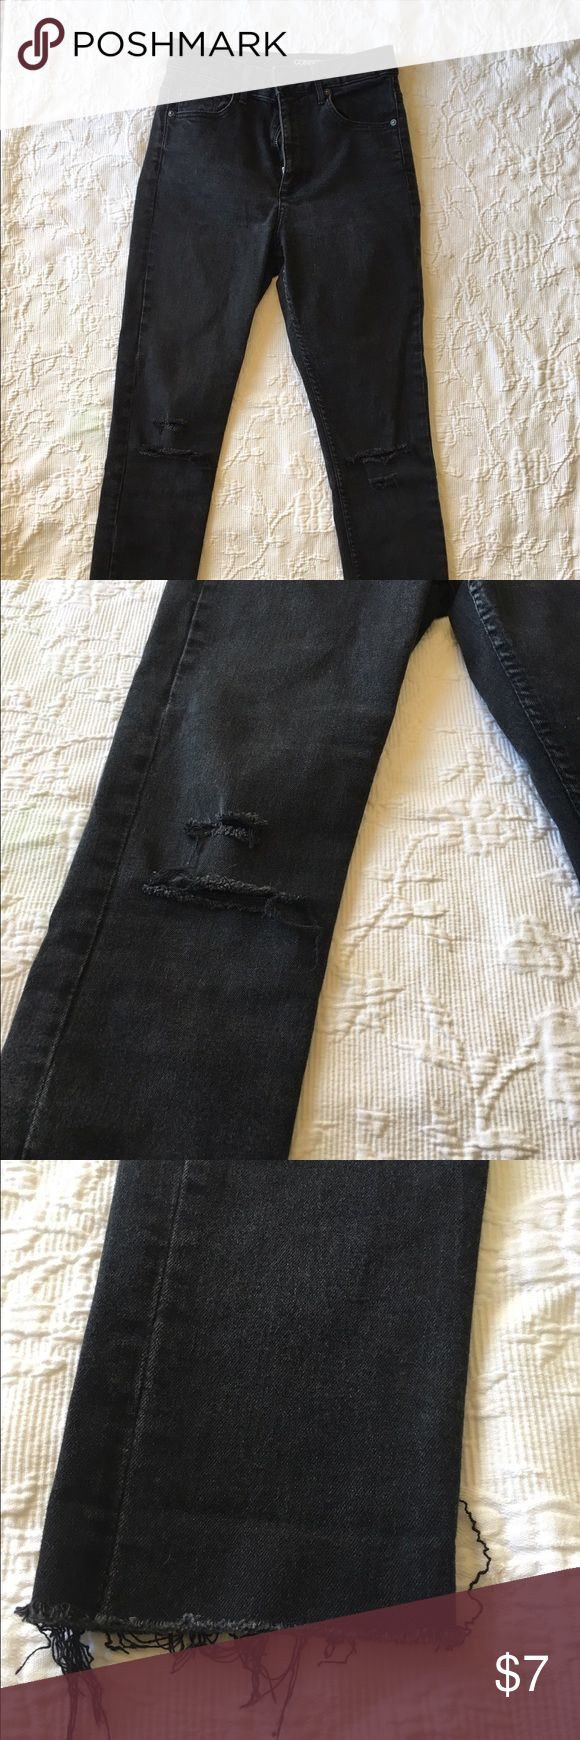 H&M Black High-Waisted Skinny Jeans Very high-waisted, nicely worn black skinnies with torn knees. Cut at bottom. Good denim, not super thin but also has stretch. H&M Jeans Skinny